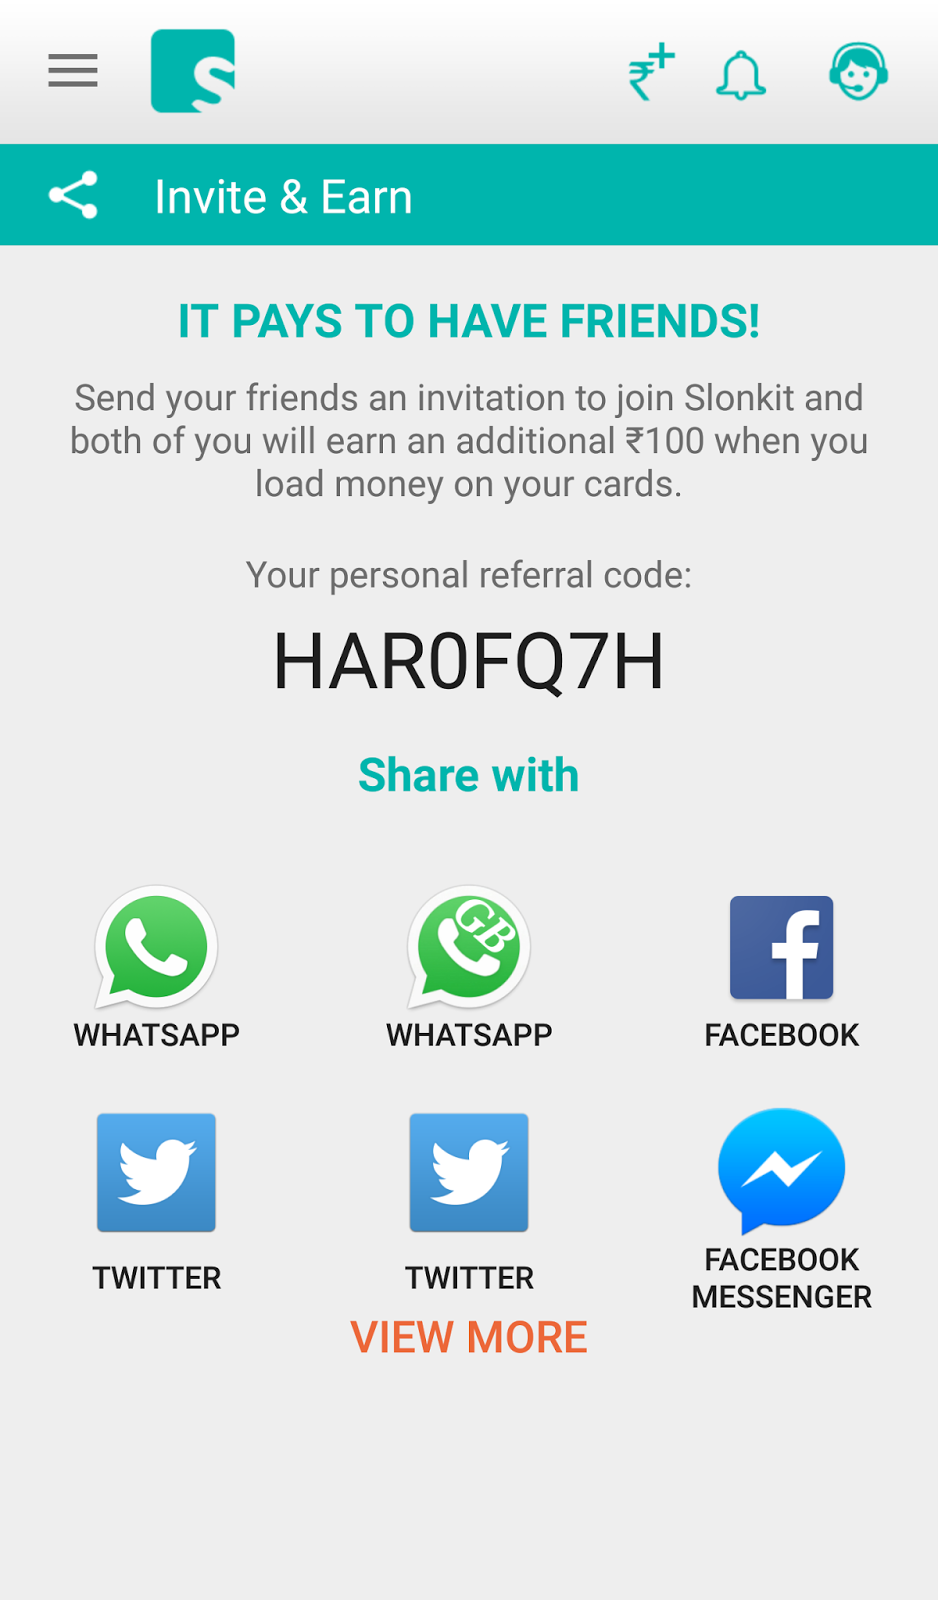 Slonkit Loot Trick Free Physical Card 100 Rs Per Refer Invite Giftcard Paypal Vcc 2 Year Verif You And Your Friend Will Get For When Load 200 Or On His